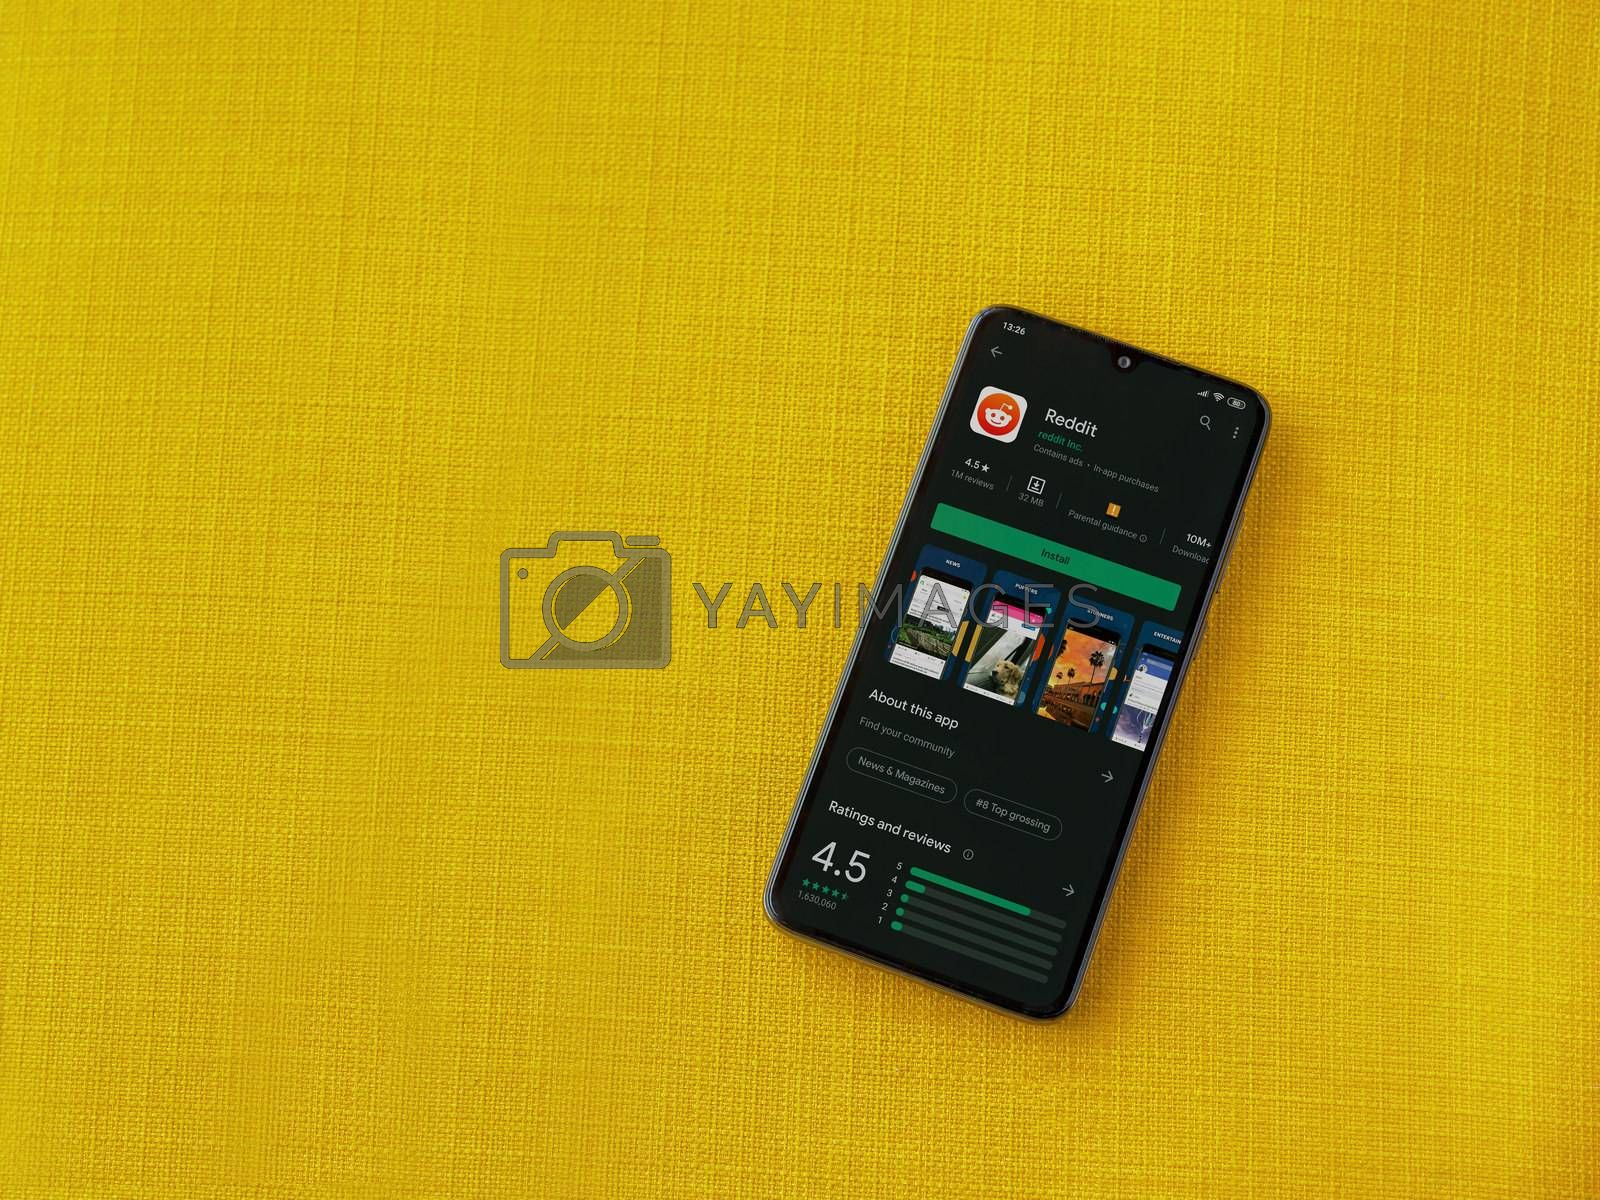 Lod, Israel - July 8, 2020: Reddit app play store page on the display of a black mobile smartphone on a yellow fabric background. Top view flat lay with copy space.